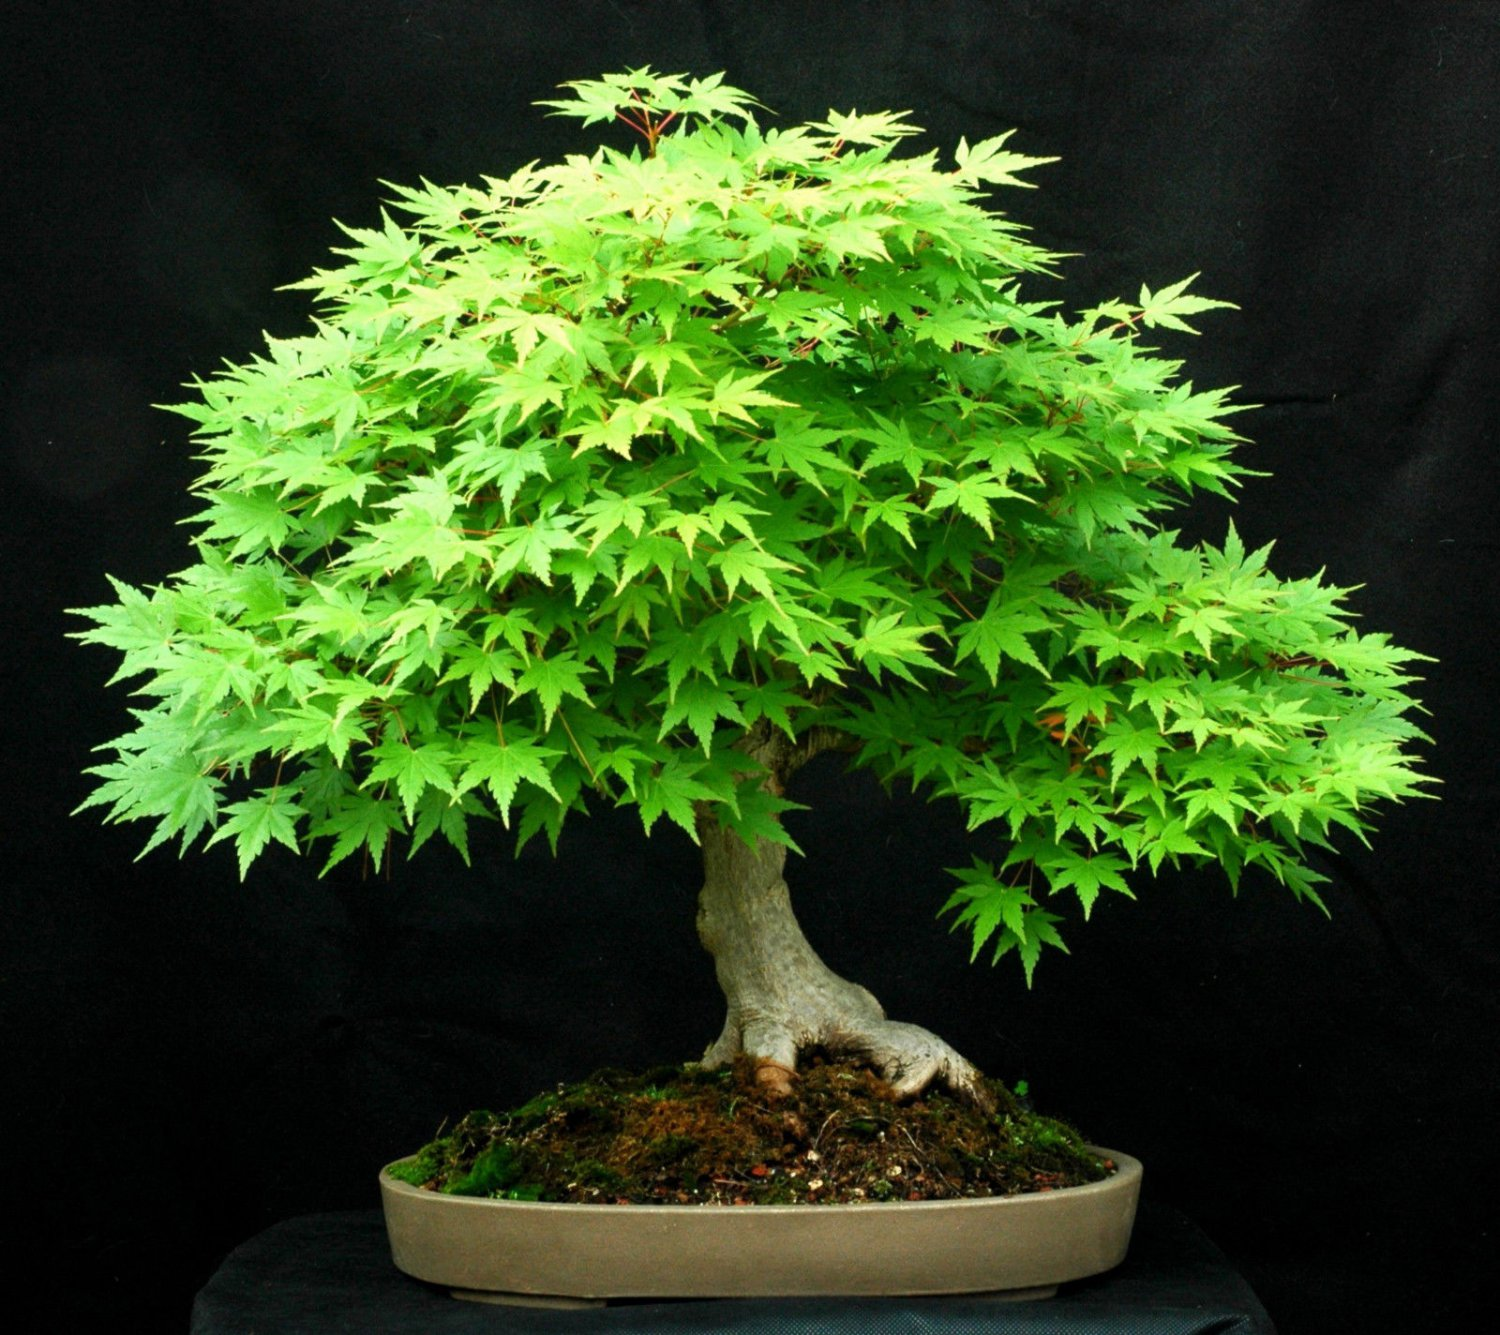 10 Green Japanese Maple (acer palmatum) seeds Bonsai Maple Tree *SHIPPING FROM US* CombSH